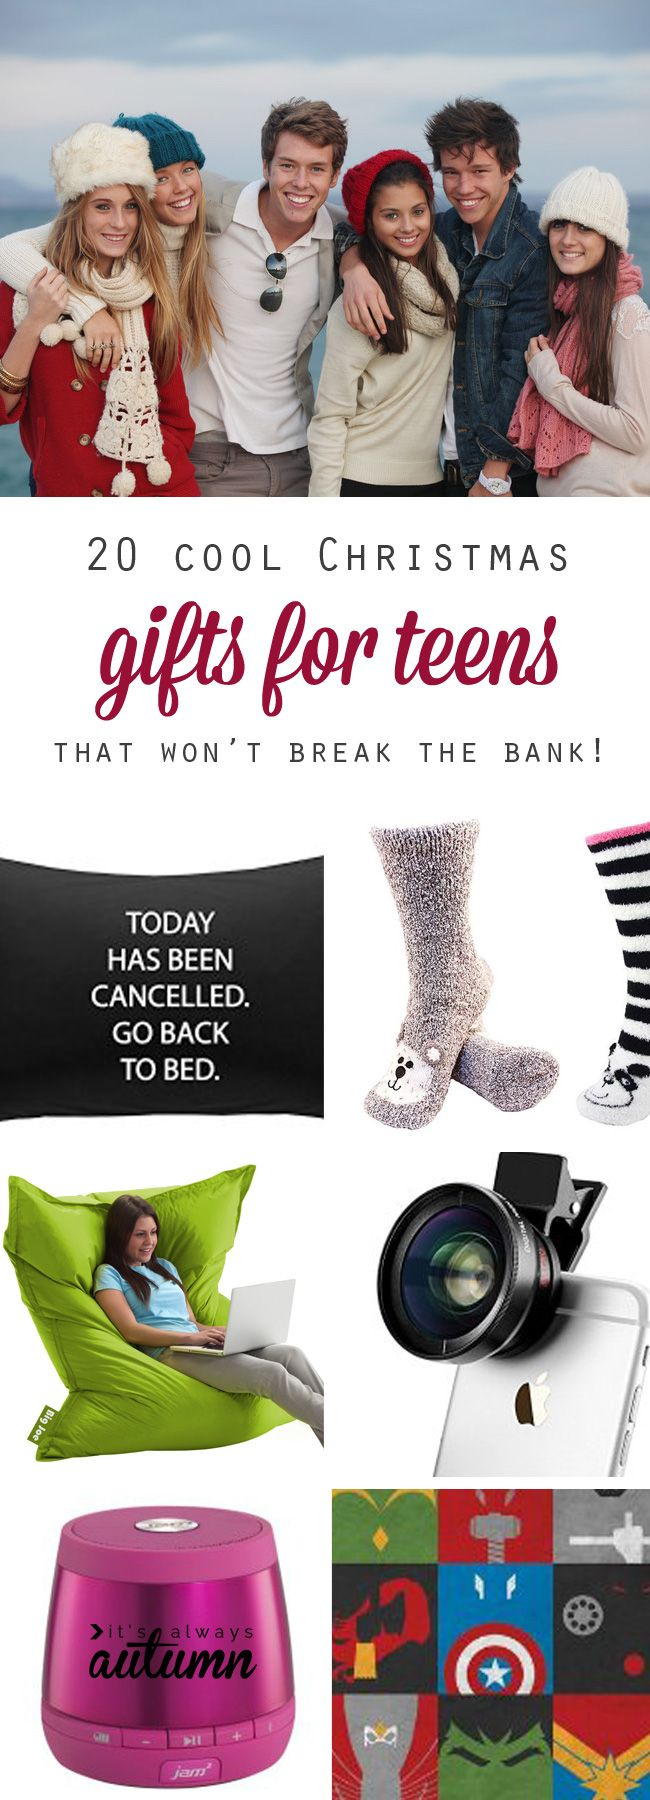 best Christmas gift ideas for teens | Christmas gifts, Birthday ...